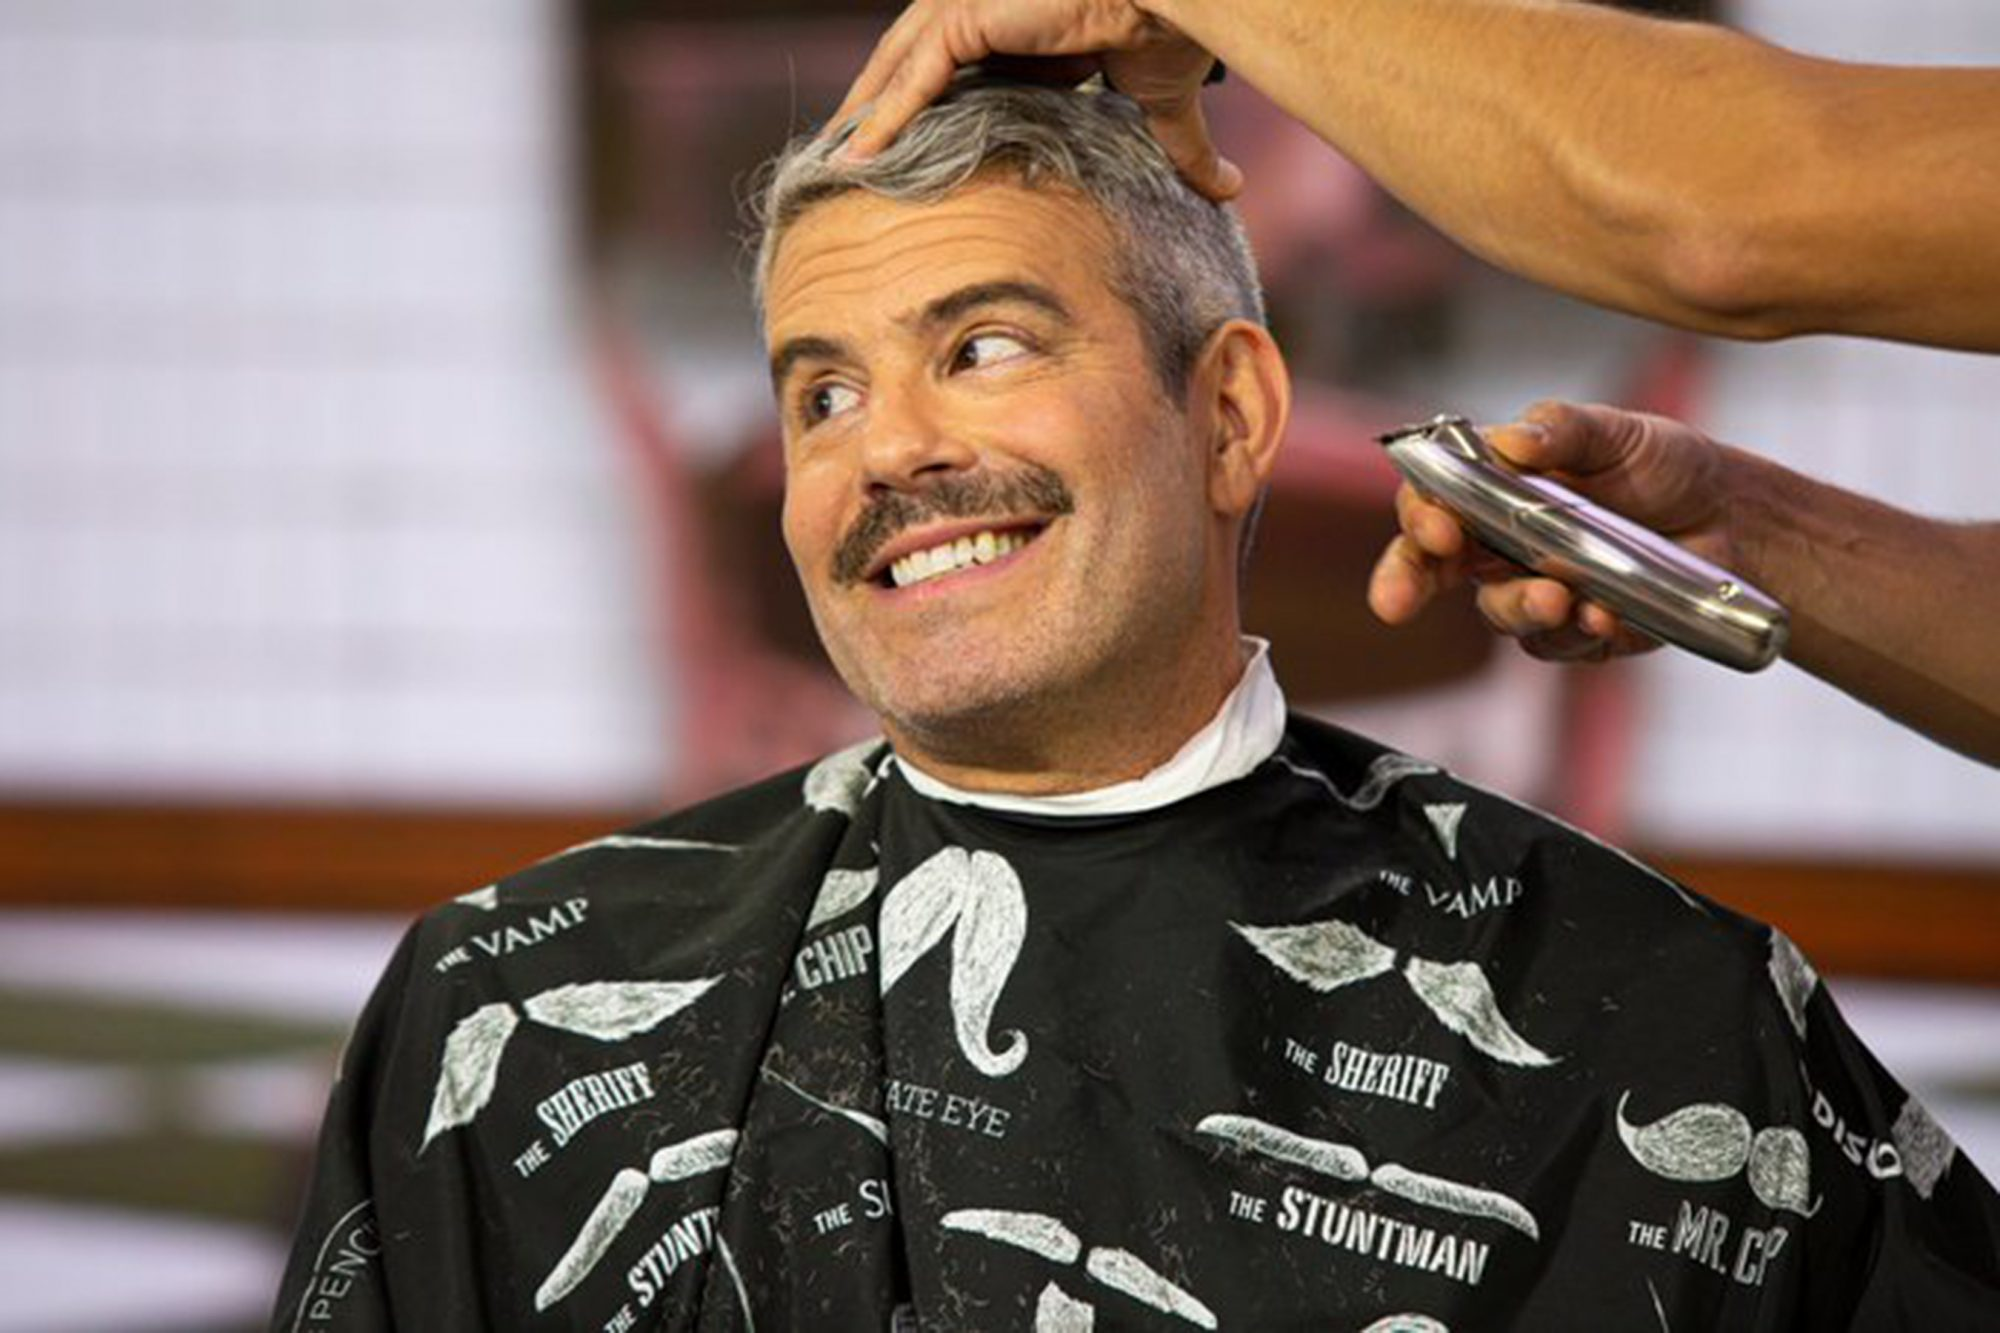 Andy Cohen Today show shaving